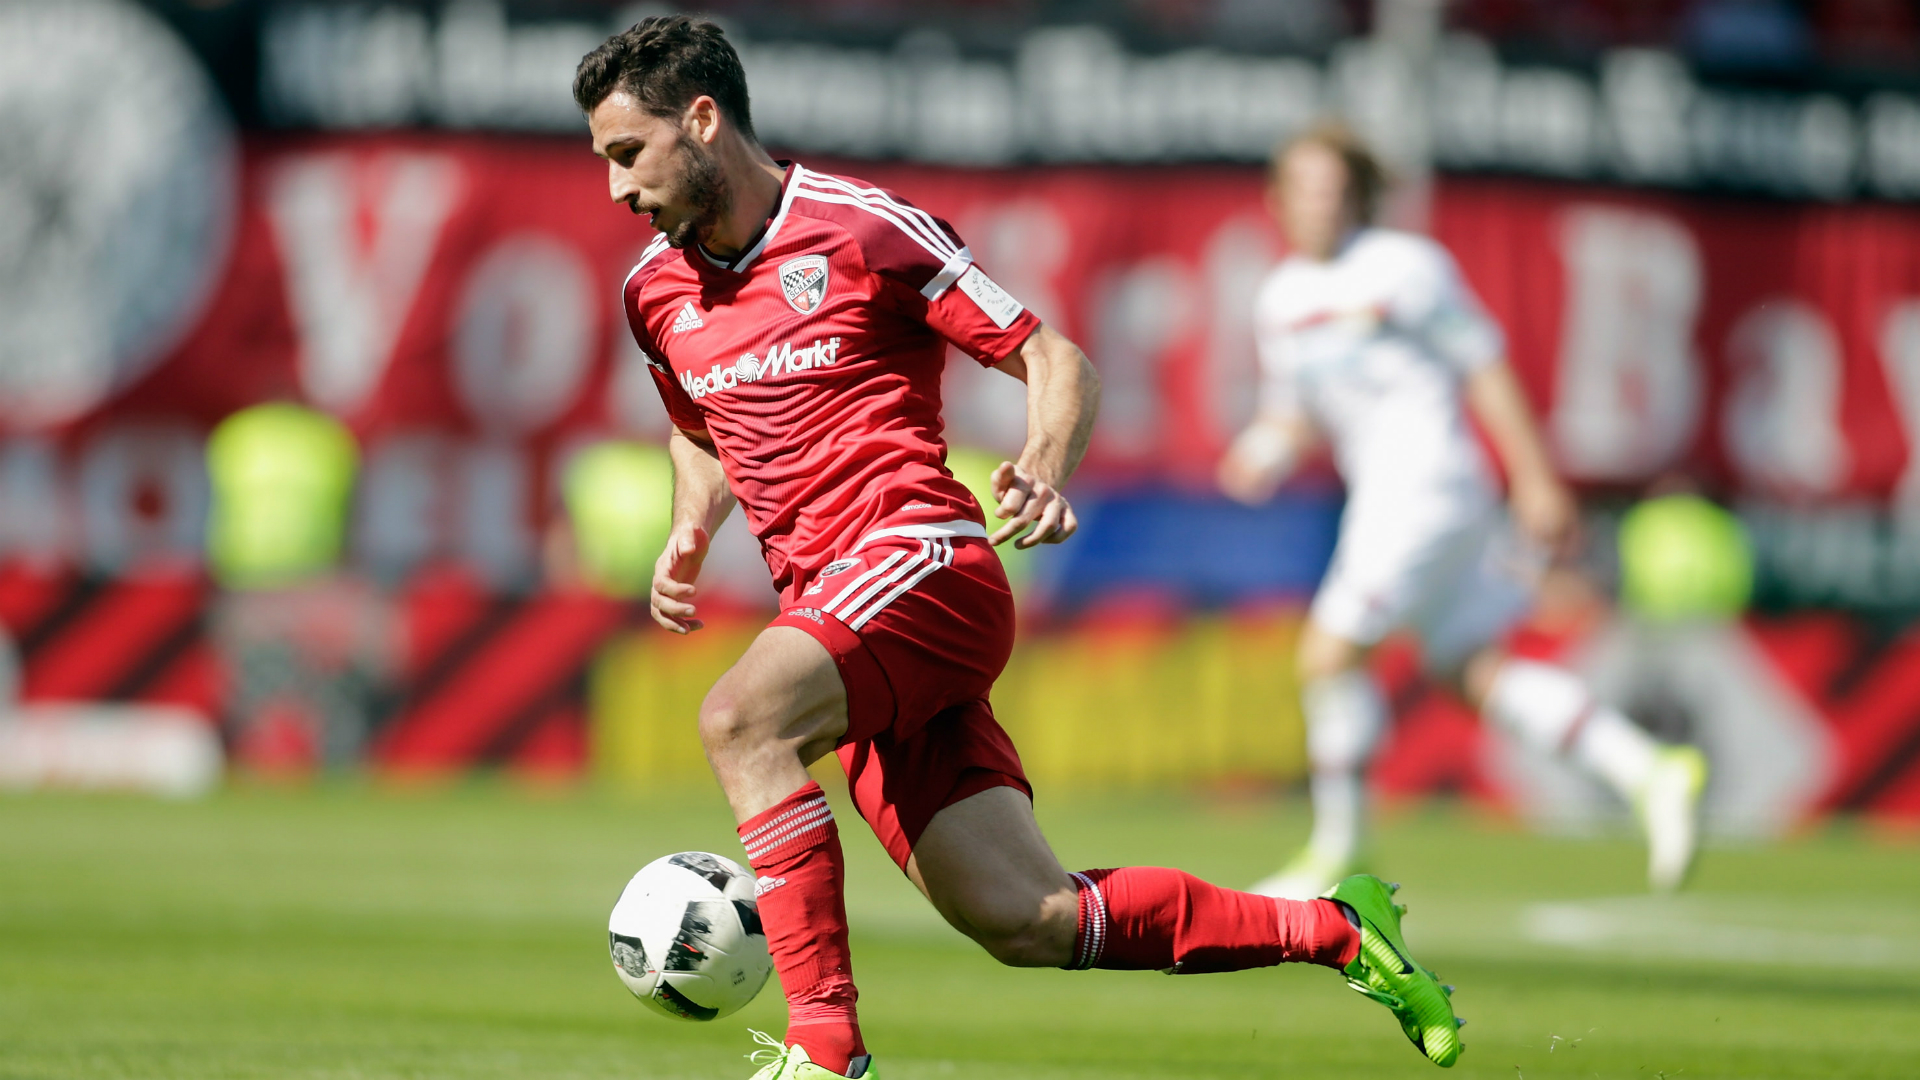 Hertha Berlin signs Australia forward Mathew Leckie